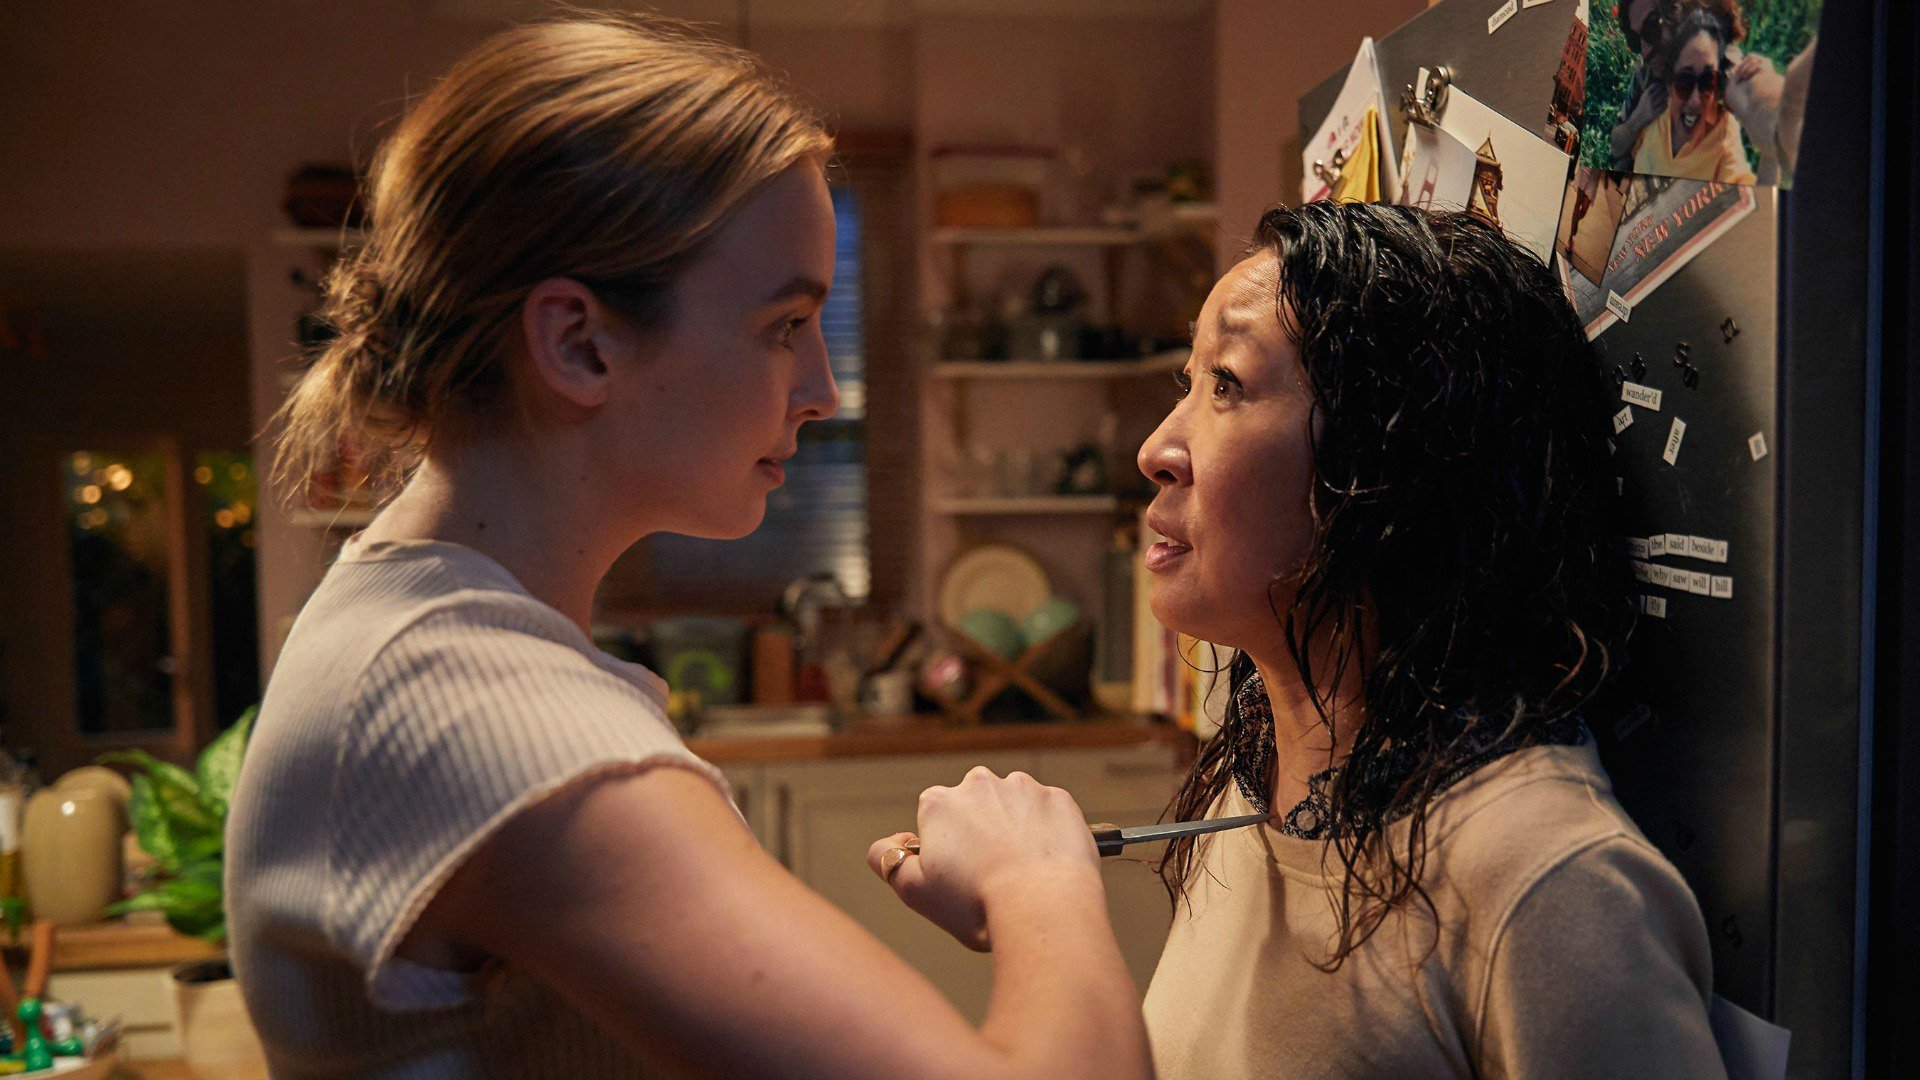 Killing Eve season 2 finale episode title hints Jodie Comer's Villanelle and Eve get their happily-ever-after